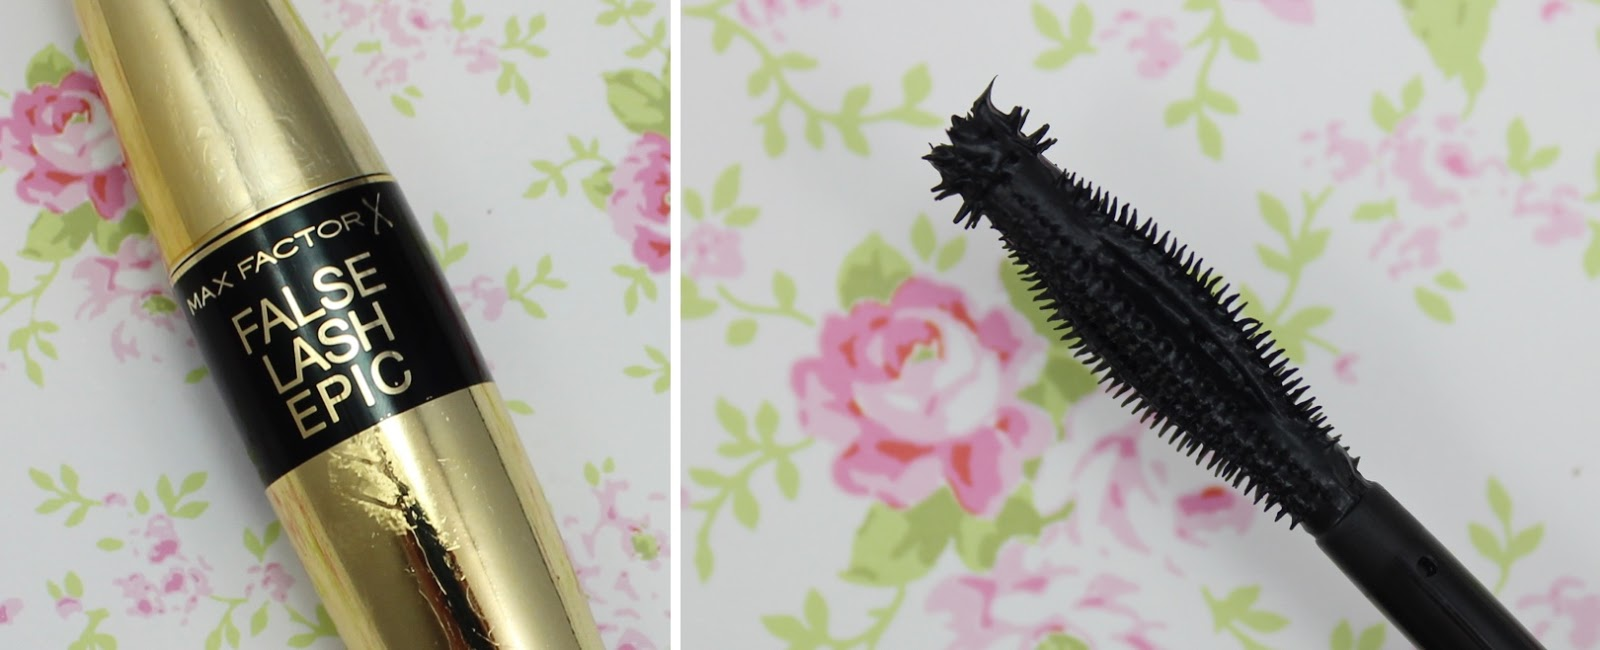 max factor false lash epic mascara beauty blog